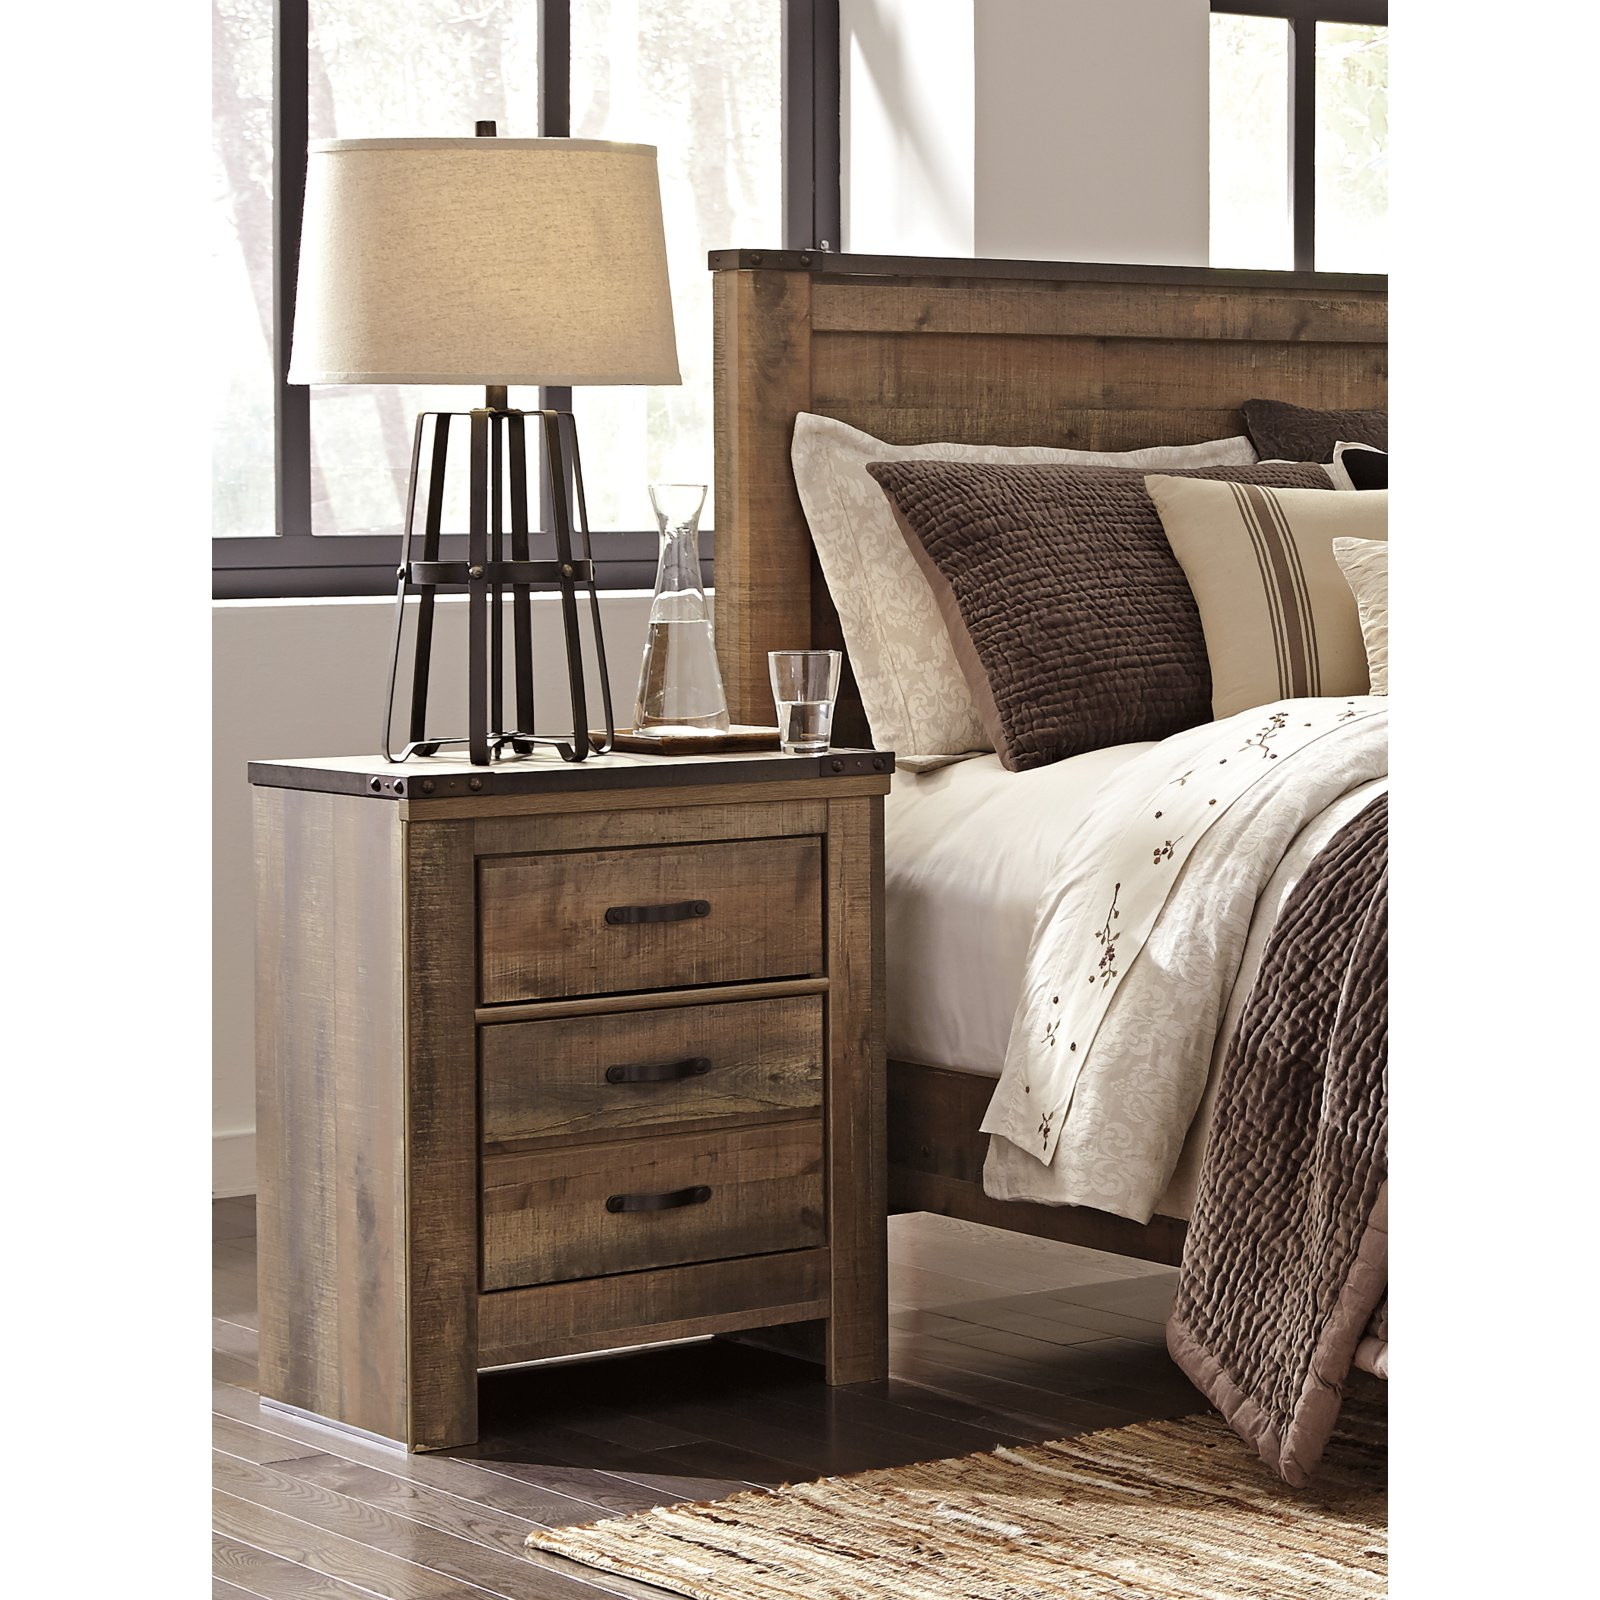 Signature Design by Ashley Trinell Night Stand